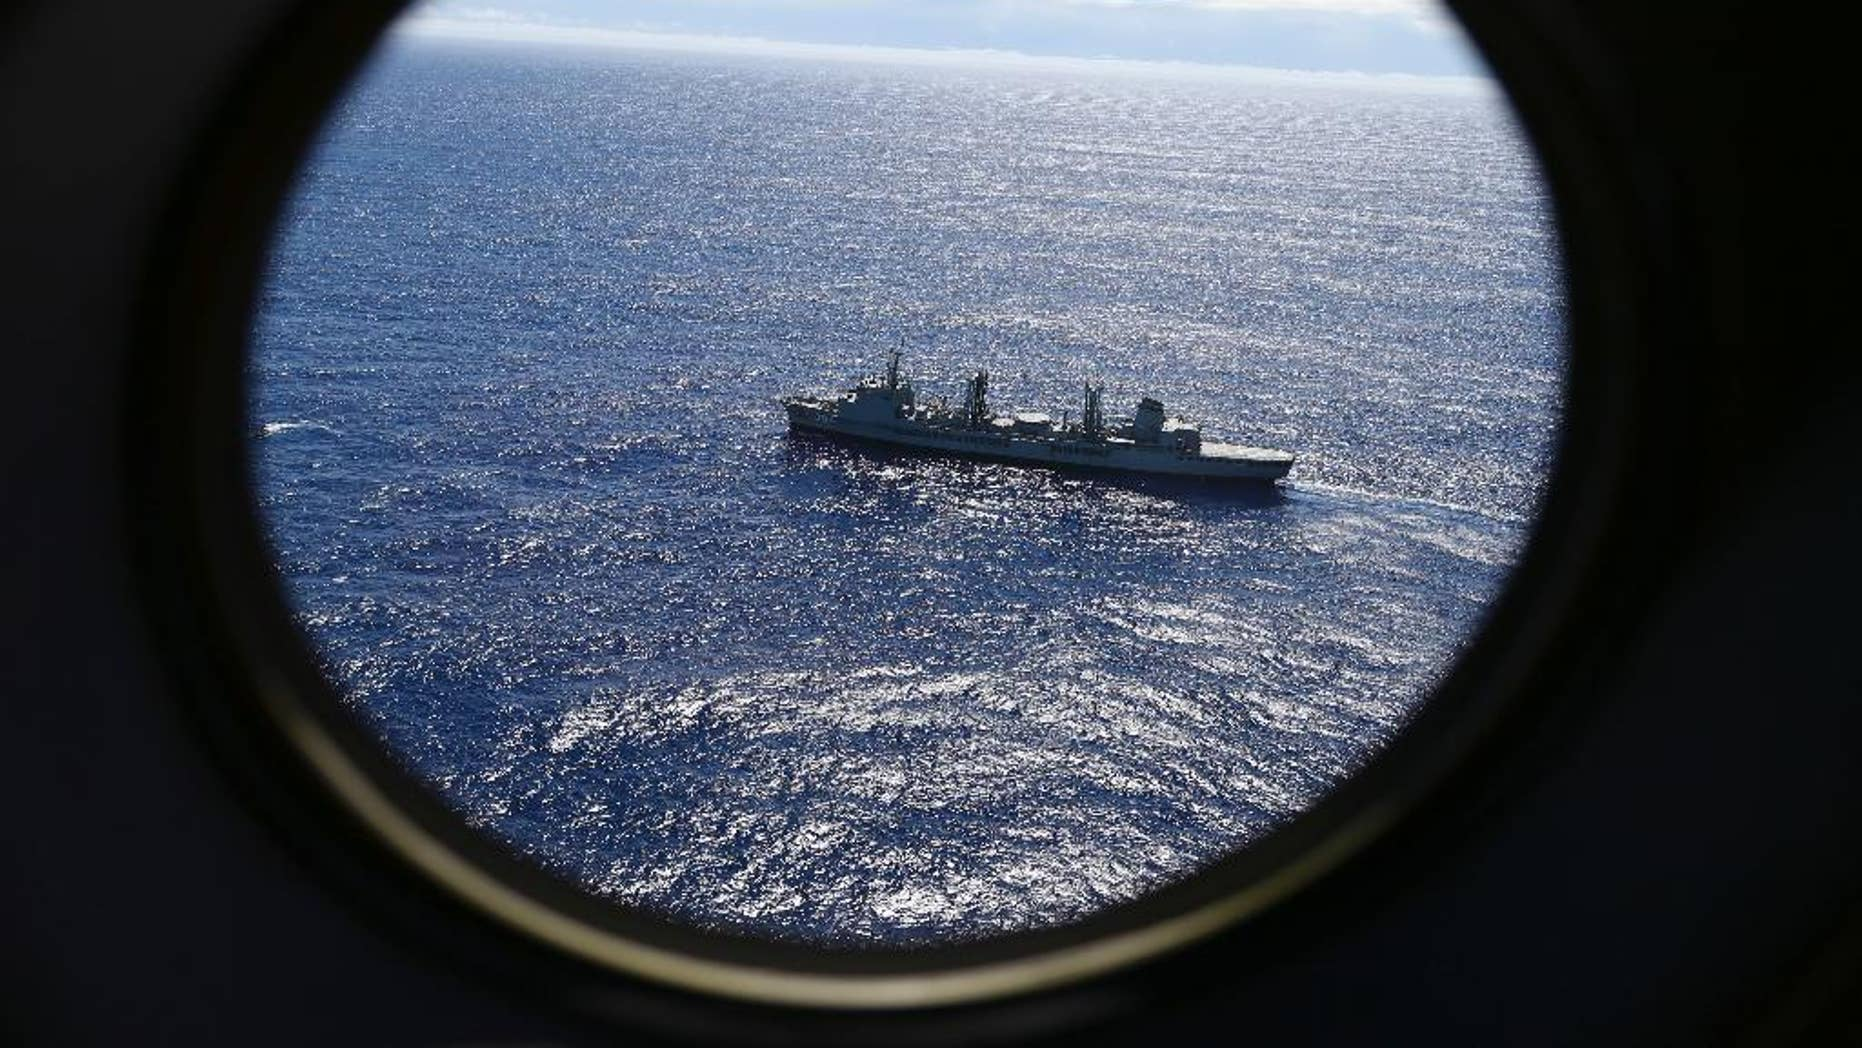 FILE - In this March 31, 2014, file photo, HMAS Success scans the southern Indian Ocean, near the coast of Western Australia, as a Royal New Zealand Air Force P3 Orion flies over, while searching for missing Malaysia Airlines Flight MH370. A Dutch survey ship Fugro Equator will finish the search of the southern Indian Ocean for Malaysia Airlines Flight 370 alone after resupplying at the southwest Australian port of Fremantle, the Australian Transport Safety Bureau, which coordinates the search, said in a statement. (AP Photo/Rob Griffith, File)